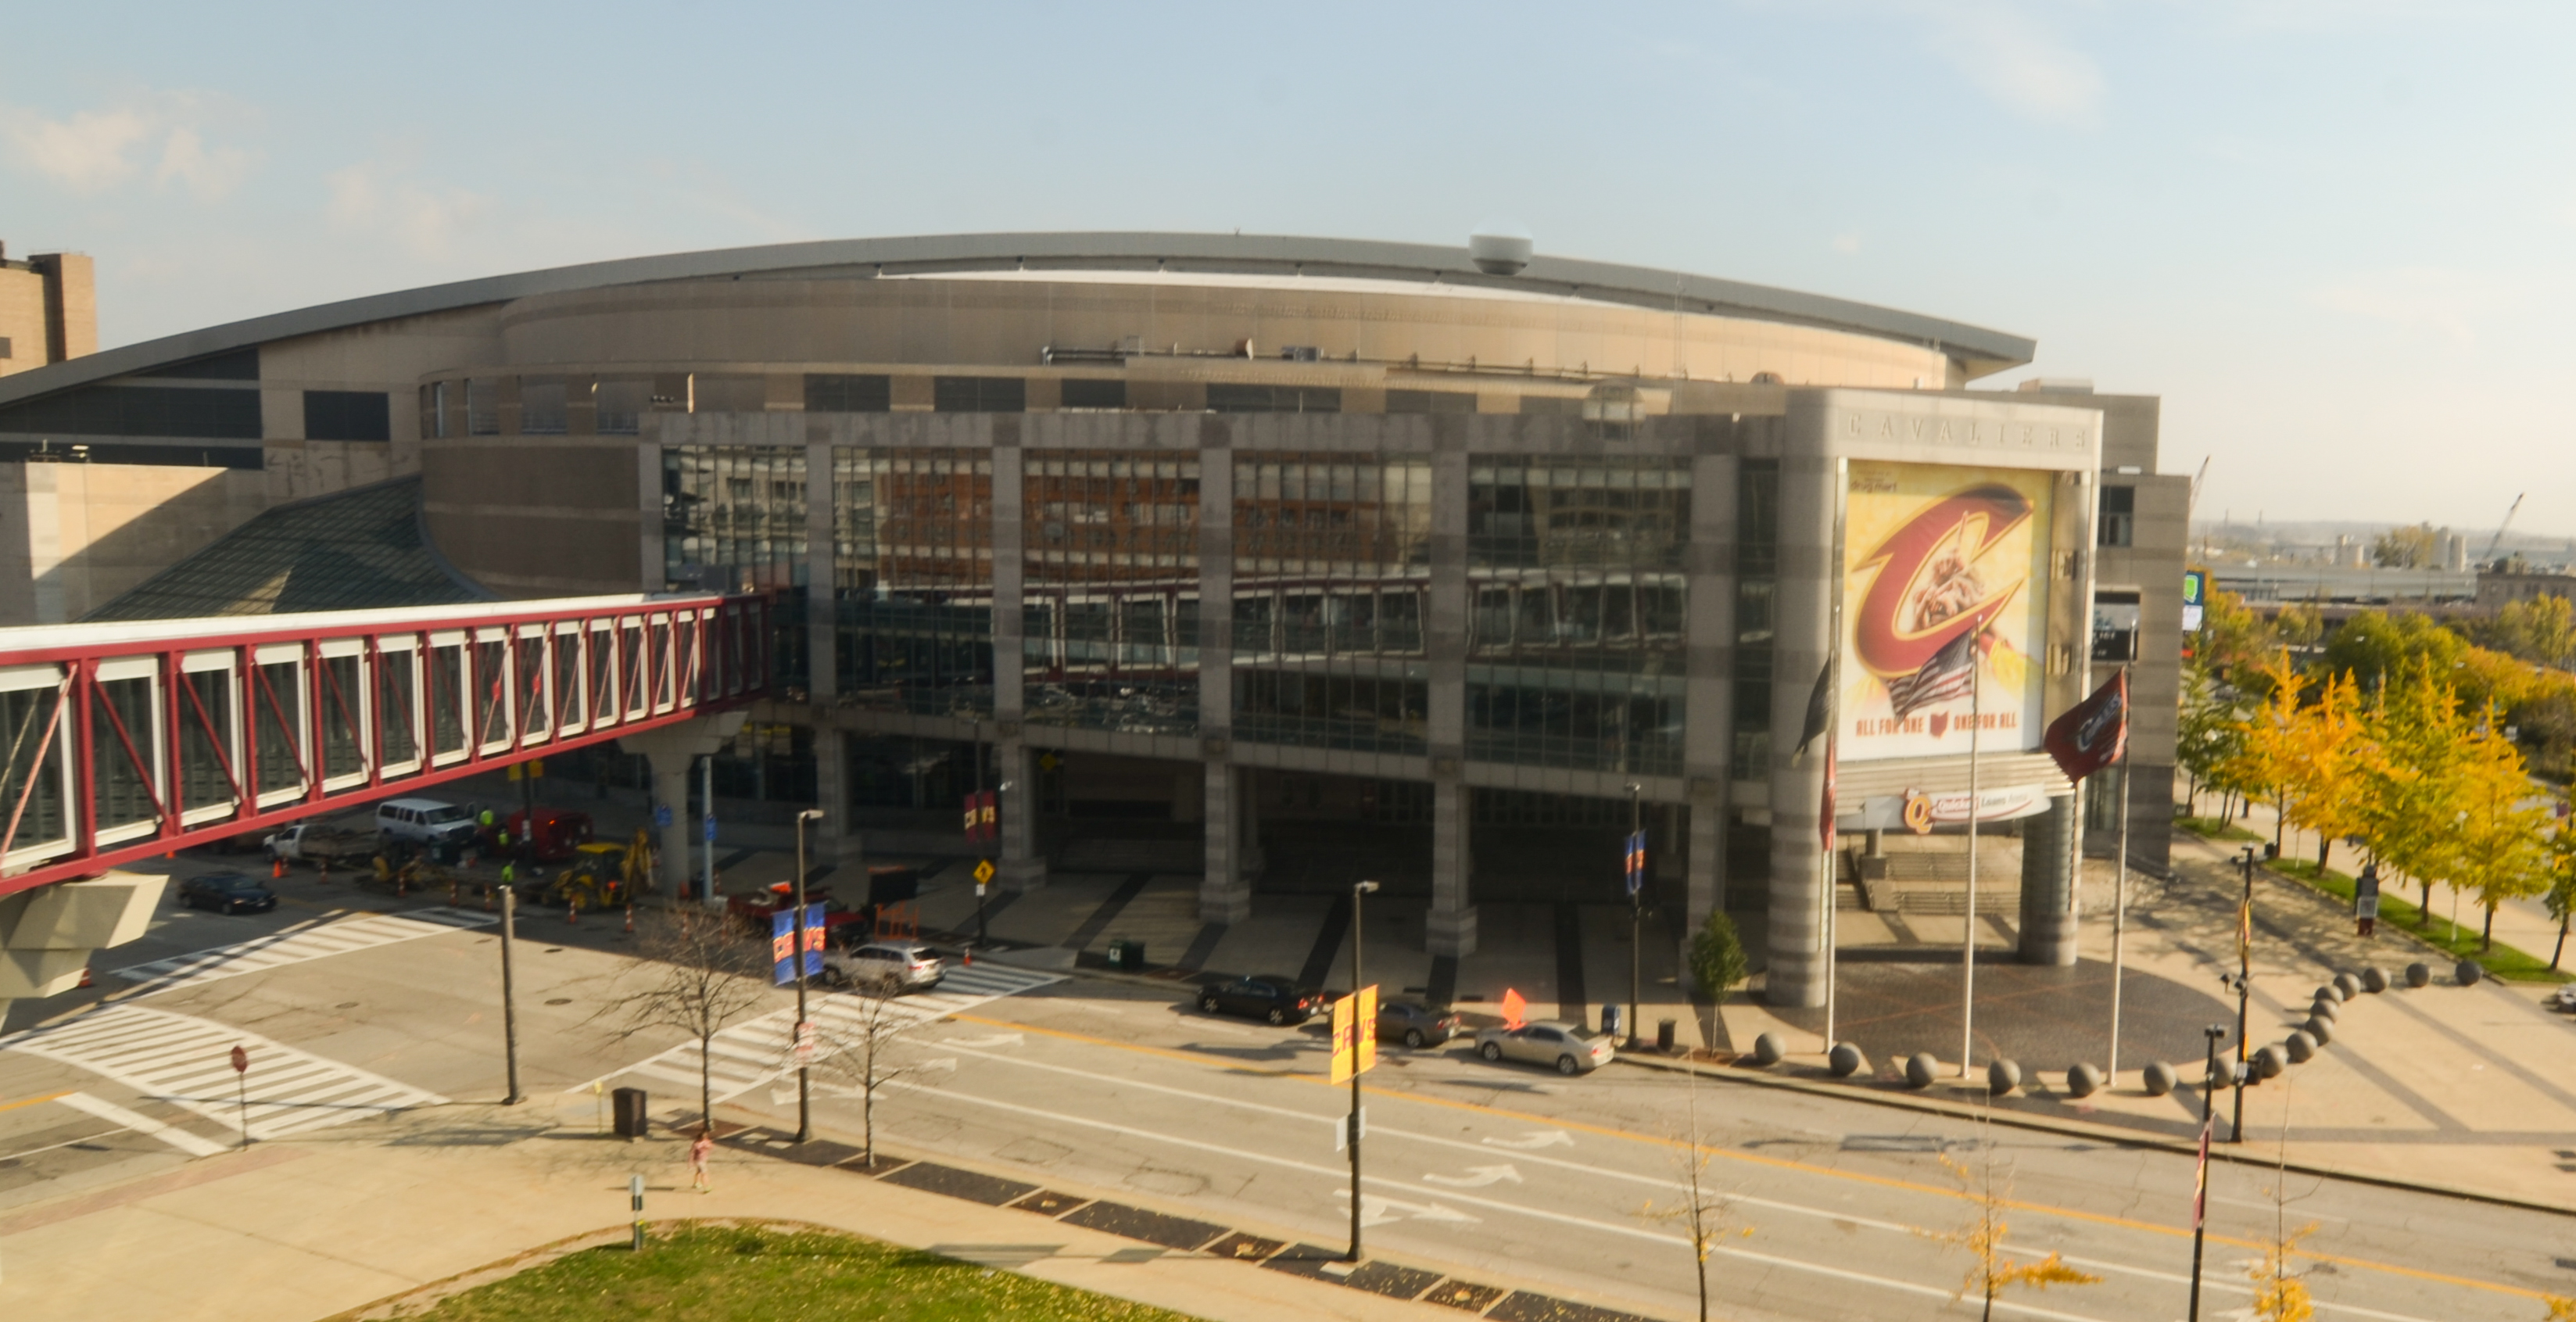 File:Quicken Loans Arena 1.jpg - Wikimedia Commons